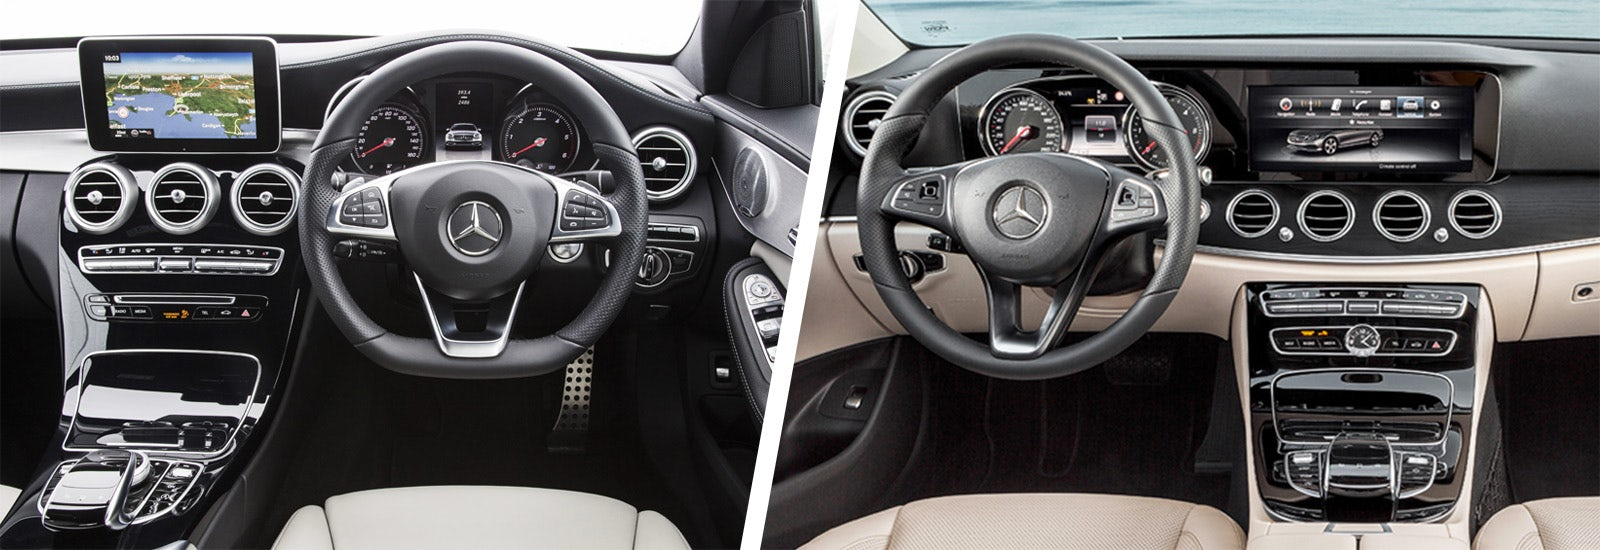 mercedes c class vs mercedes e class comparison carwow. Black Bedroom Furniture Sets. Home Design Ideas